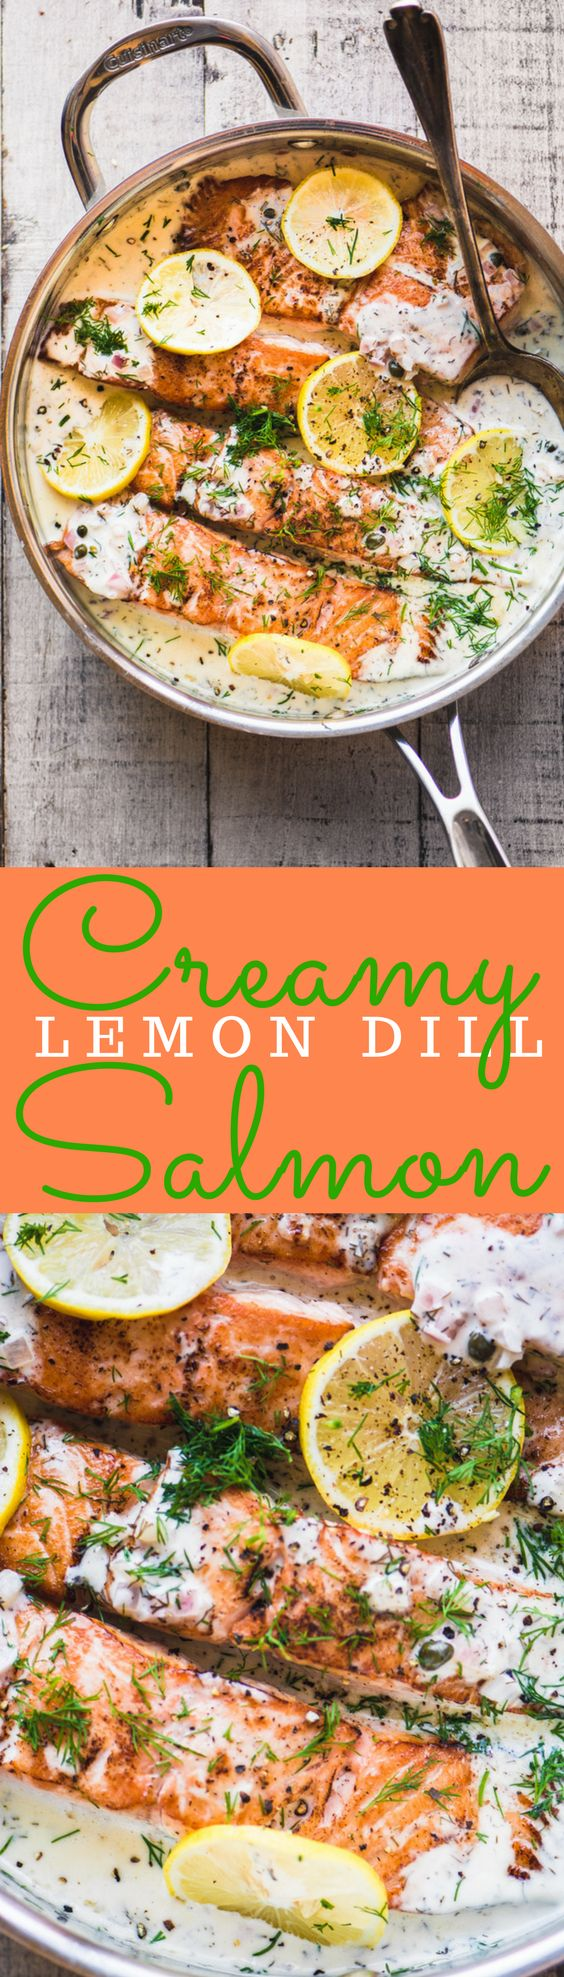 Creamy Lemon Dill Salmon ~ incredible. Used chicken stock instead of wine and lots of finely sliced garlic instead of shallot. Lots of dried dill and added lemon when sauce was off heat to prevent curdling of sauce